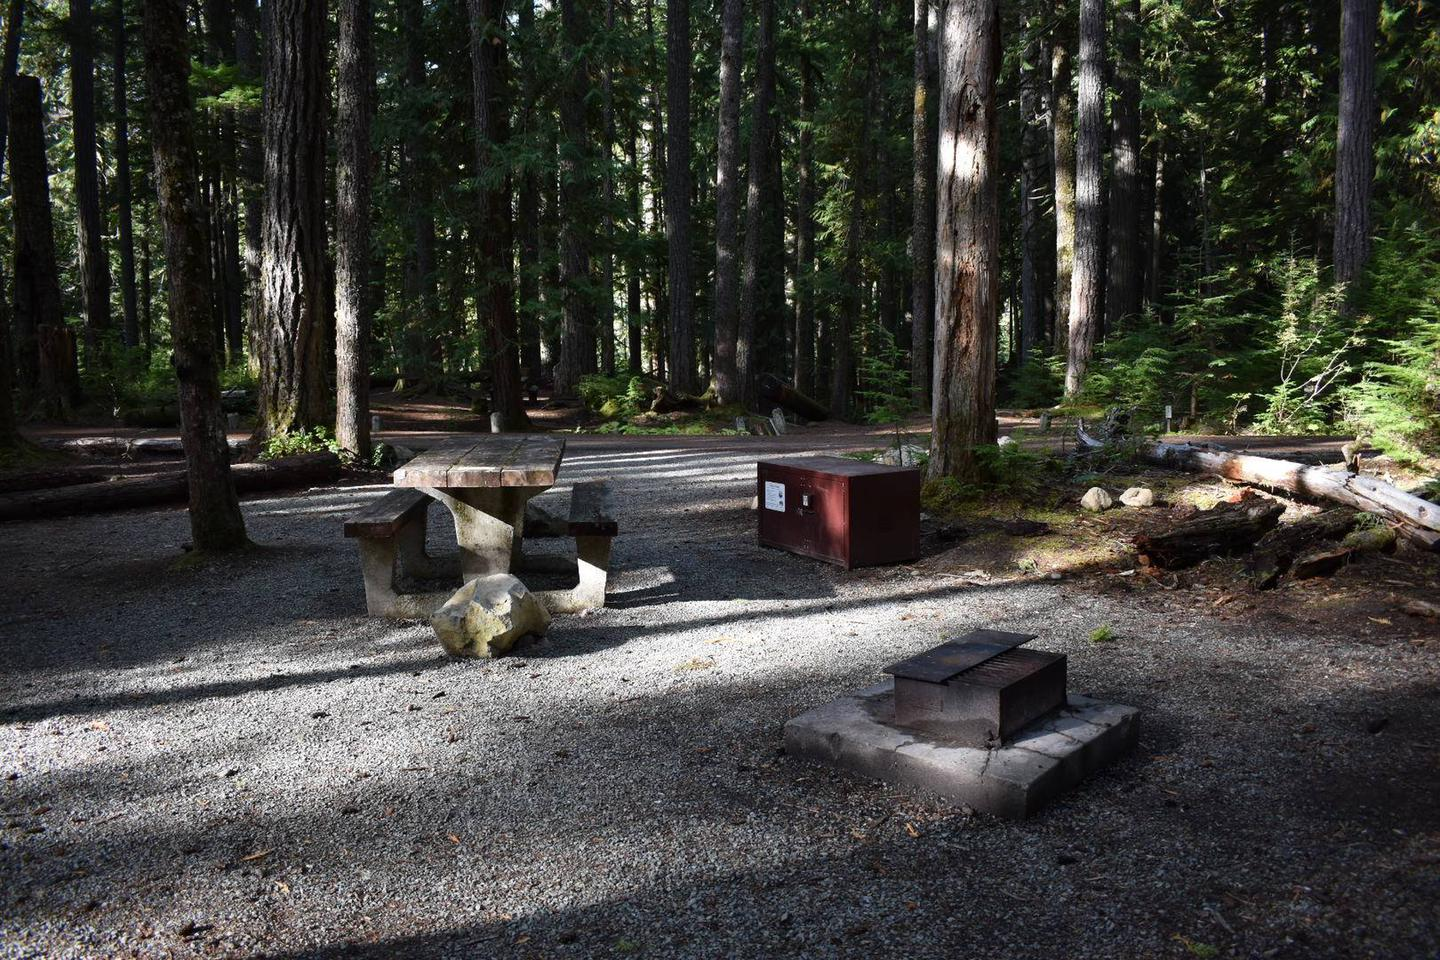 Campers are provided with a picnic table, food storage box, and fire pit,